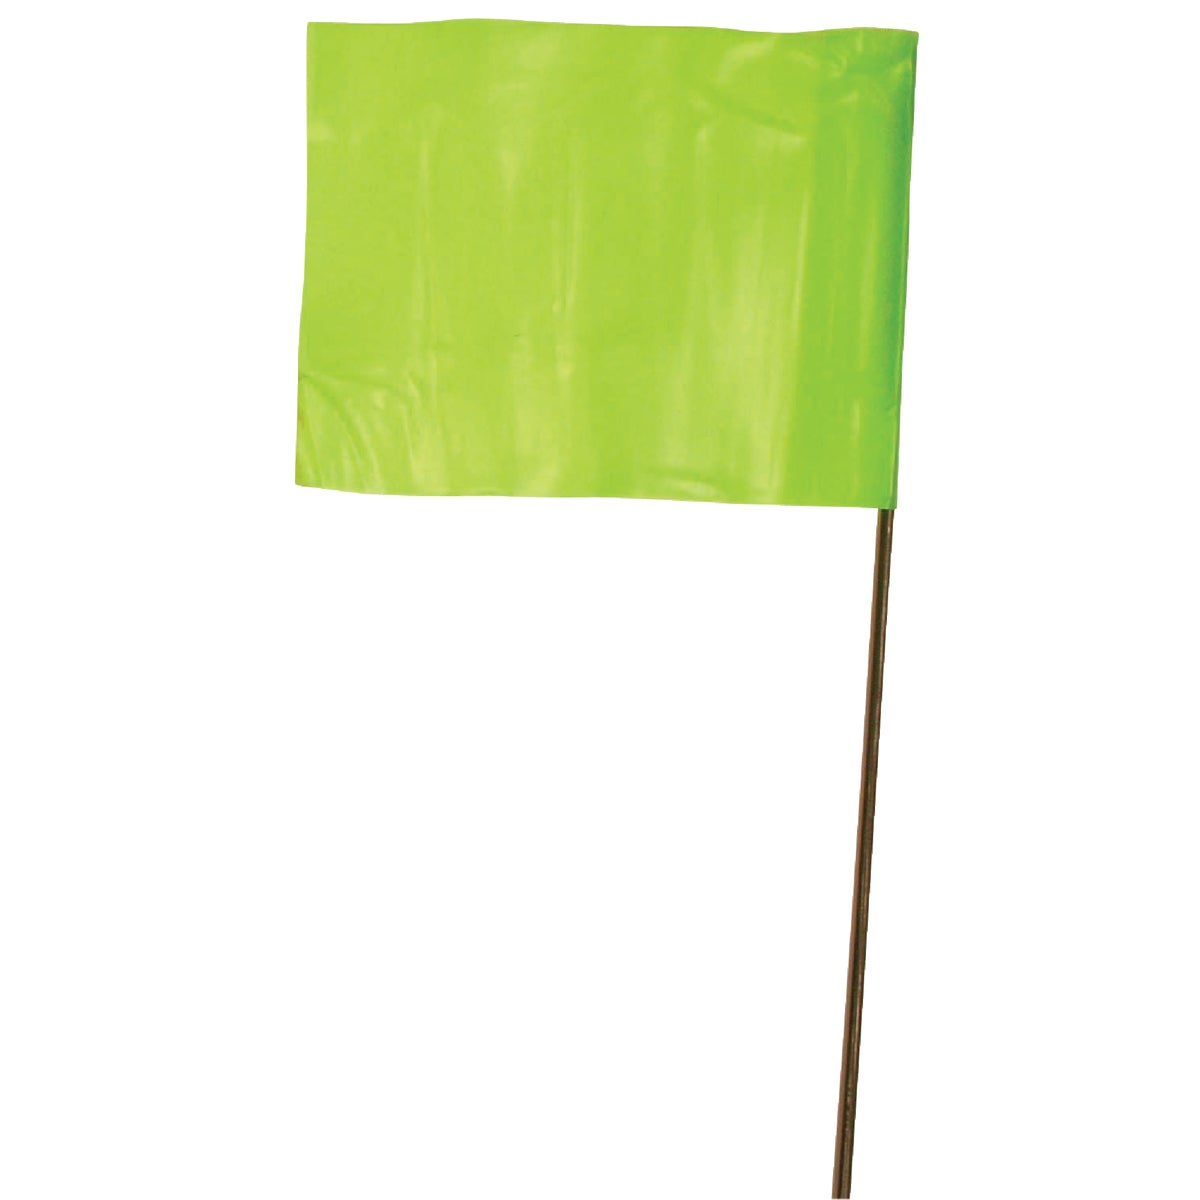 Irwin 100PK LIME FLAGS 64102